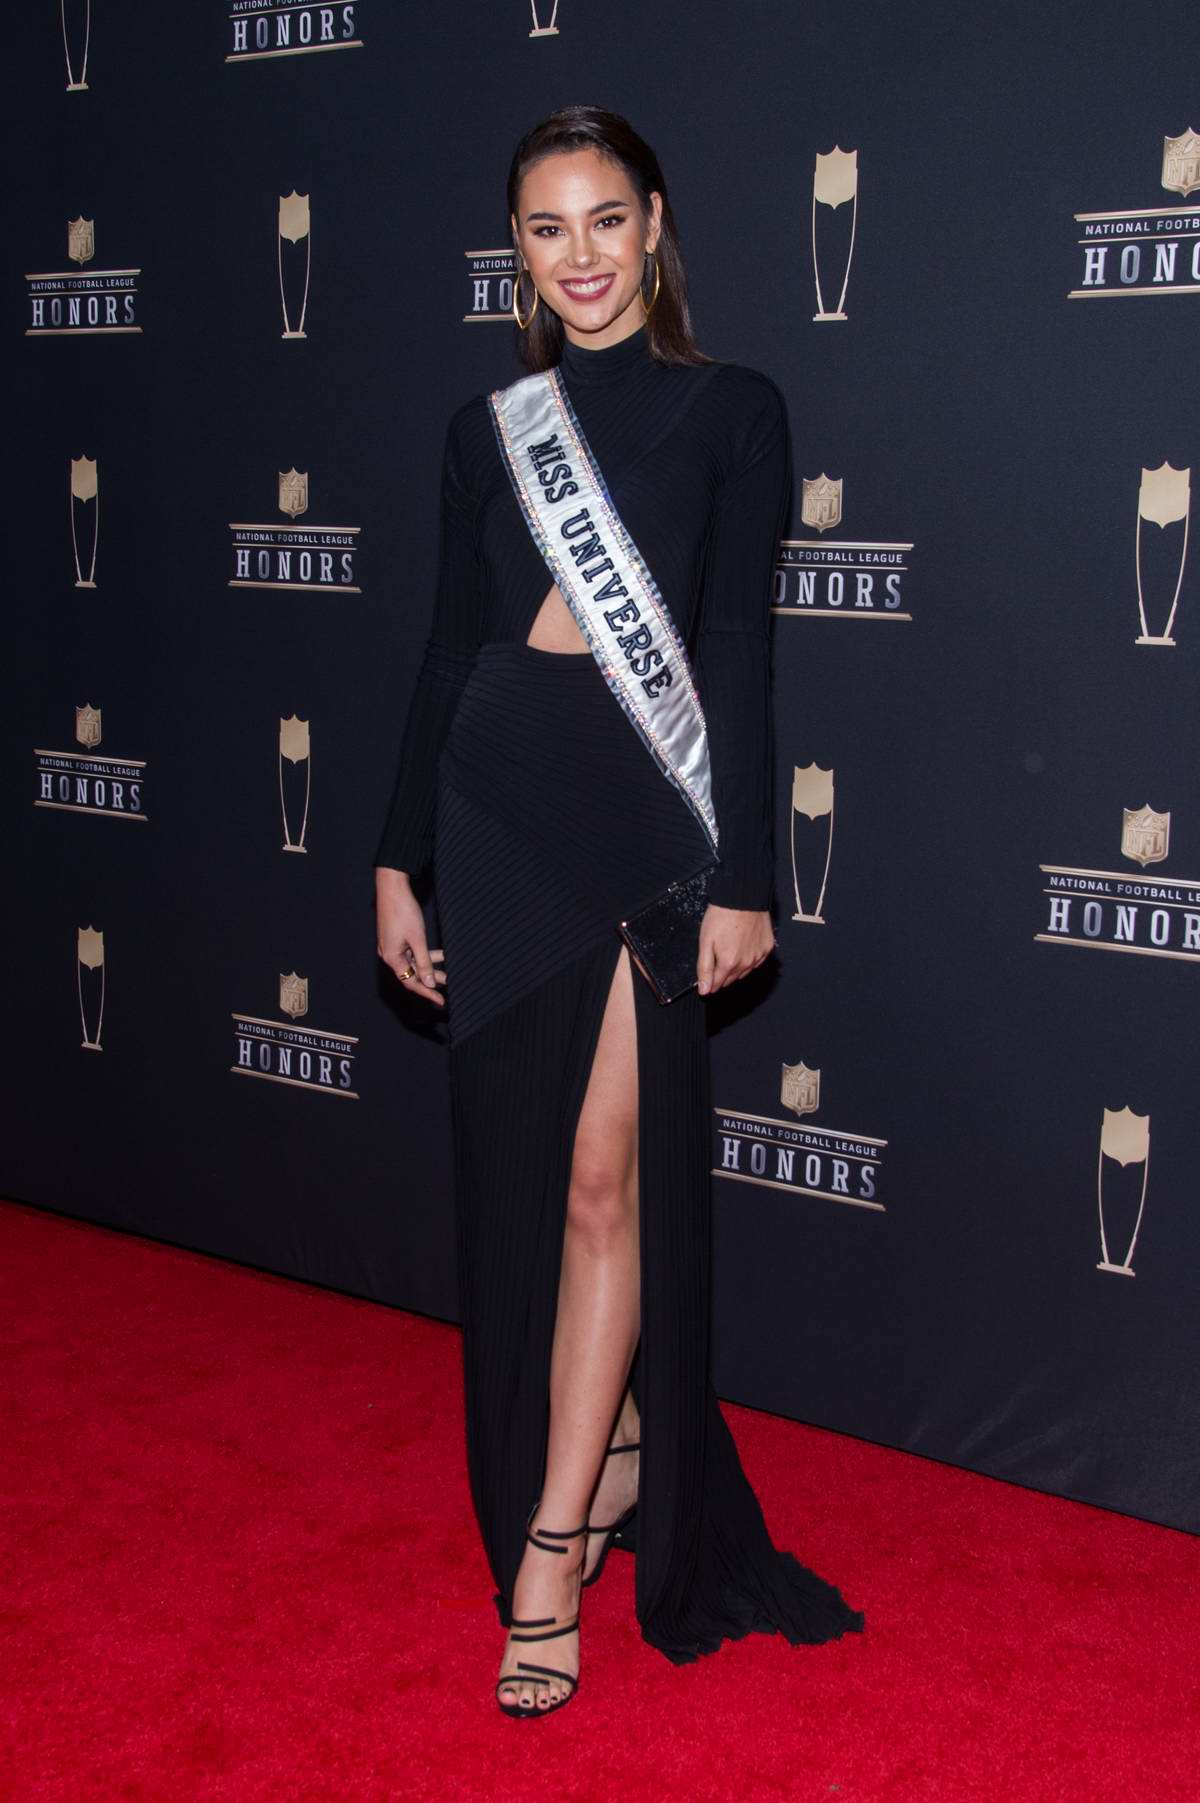 Catriona Gray attends the 8th Annual NFL Honors at the Fox Theatre in Atlanta, Georgia